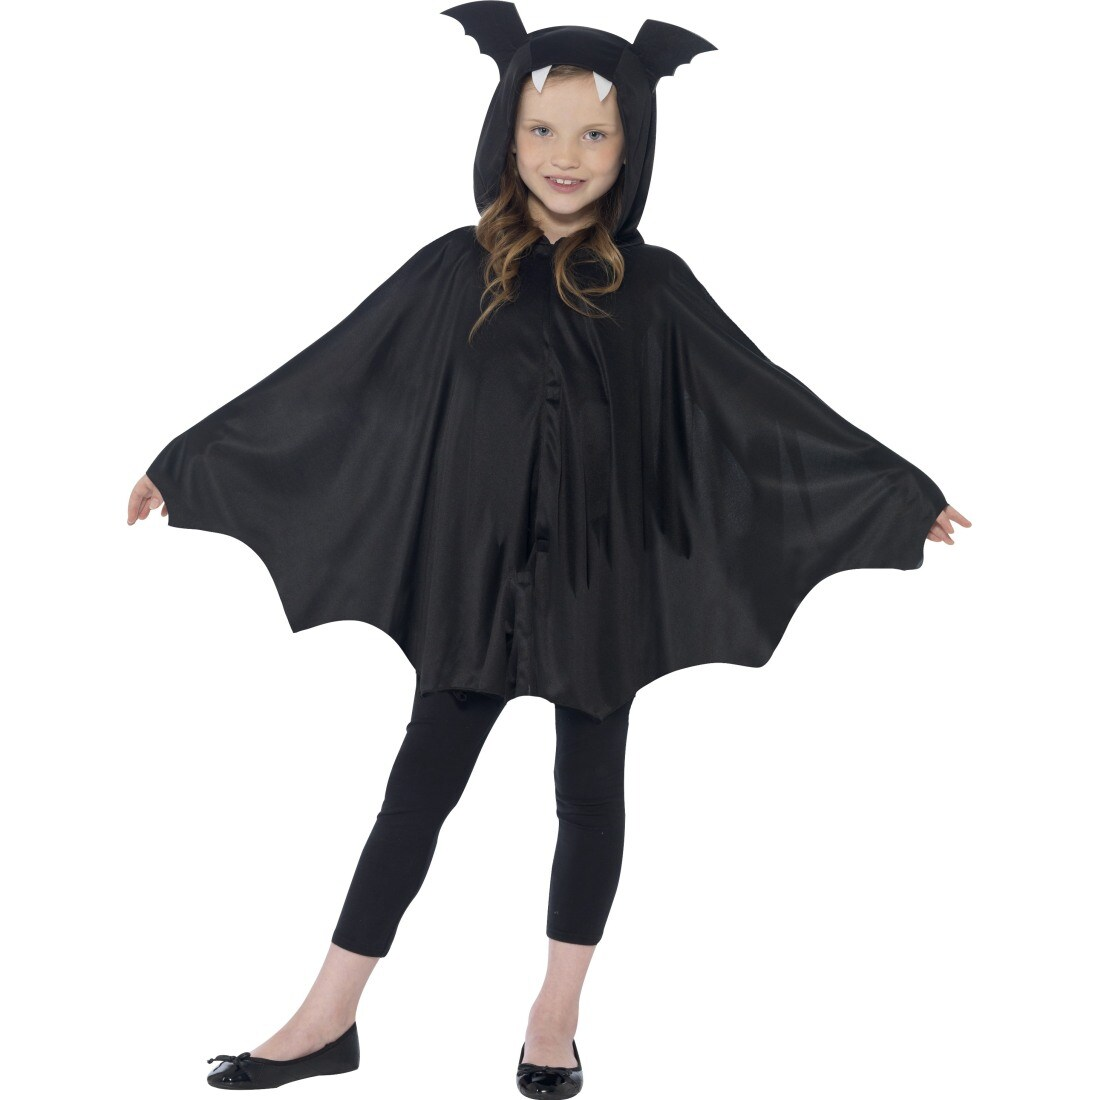 fledermaus umhang kind bat cape kinder halloween 13 99. Black Bedroom Furniture Sets. Home Design Ideas